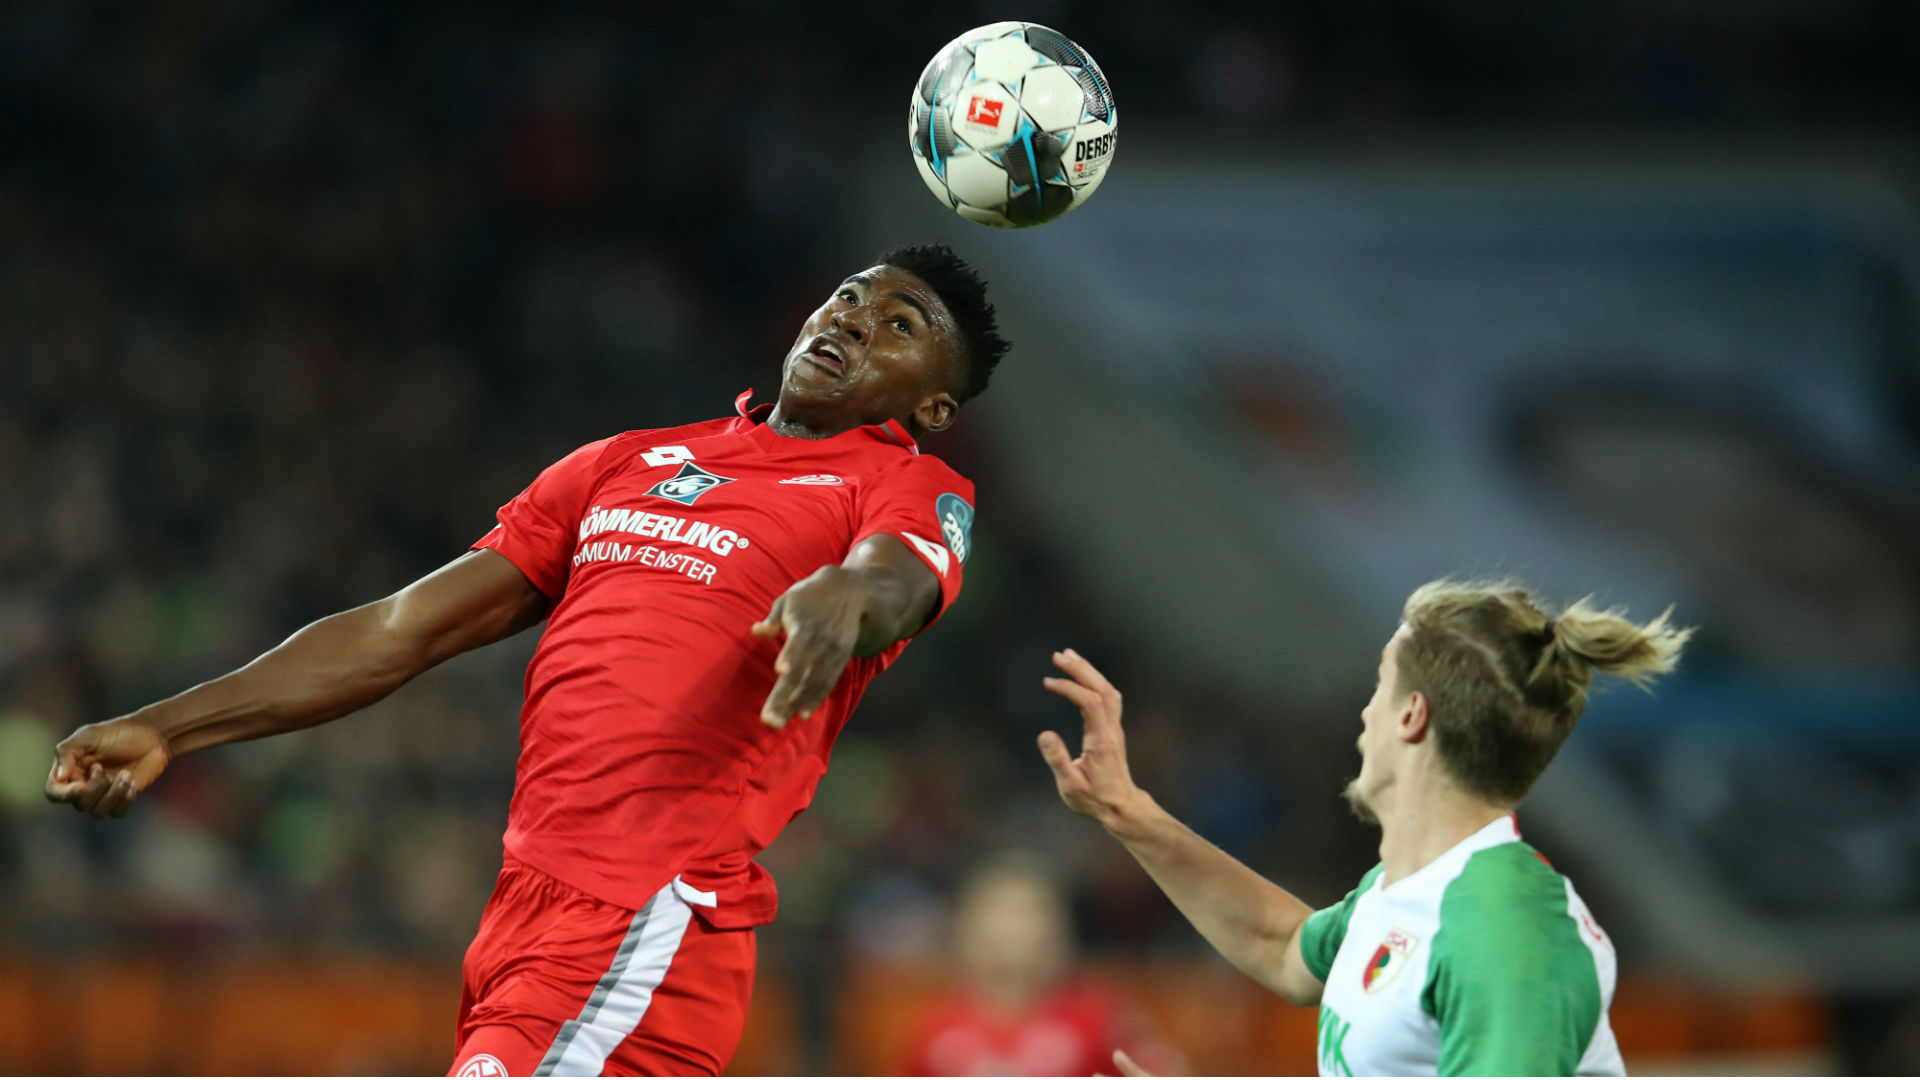 Liverpool loanee Awoniyi ends wait for first Mainz goal against Cologne